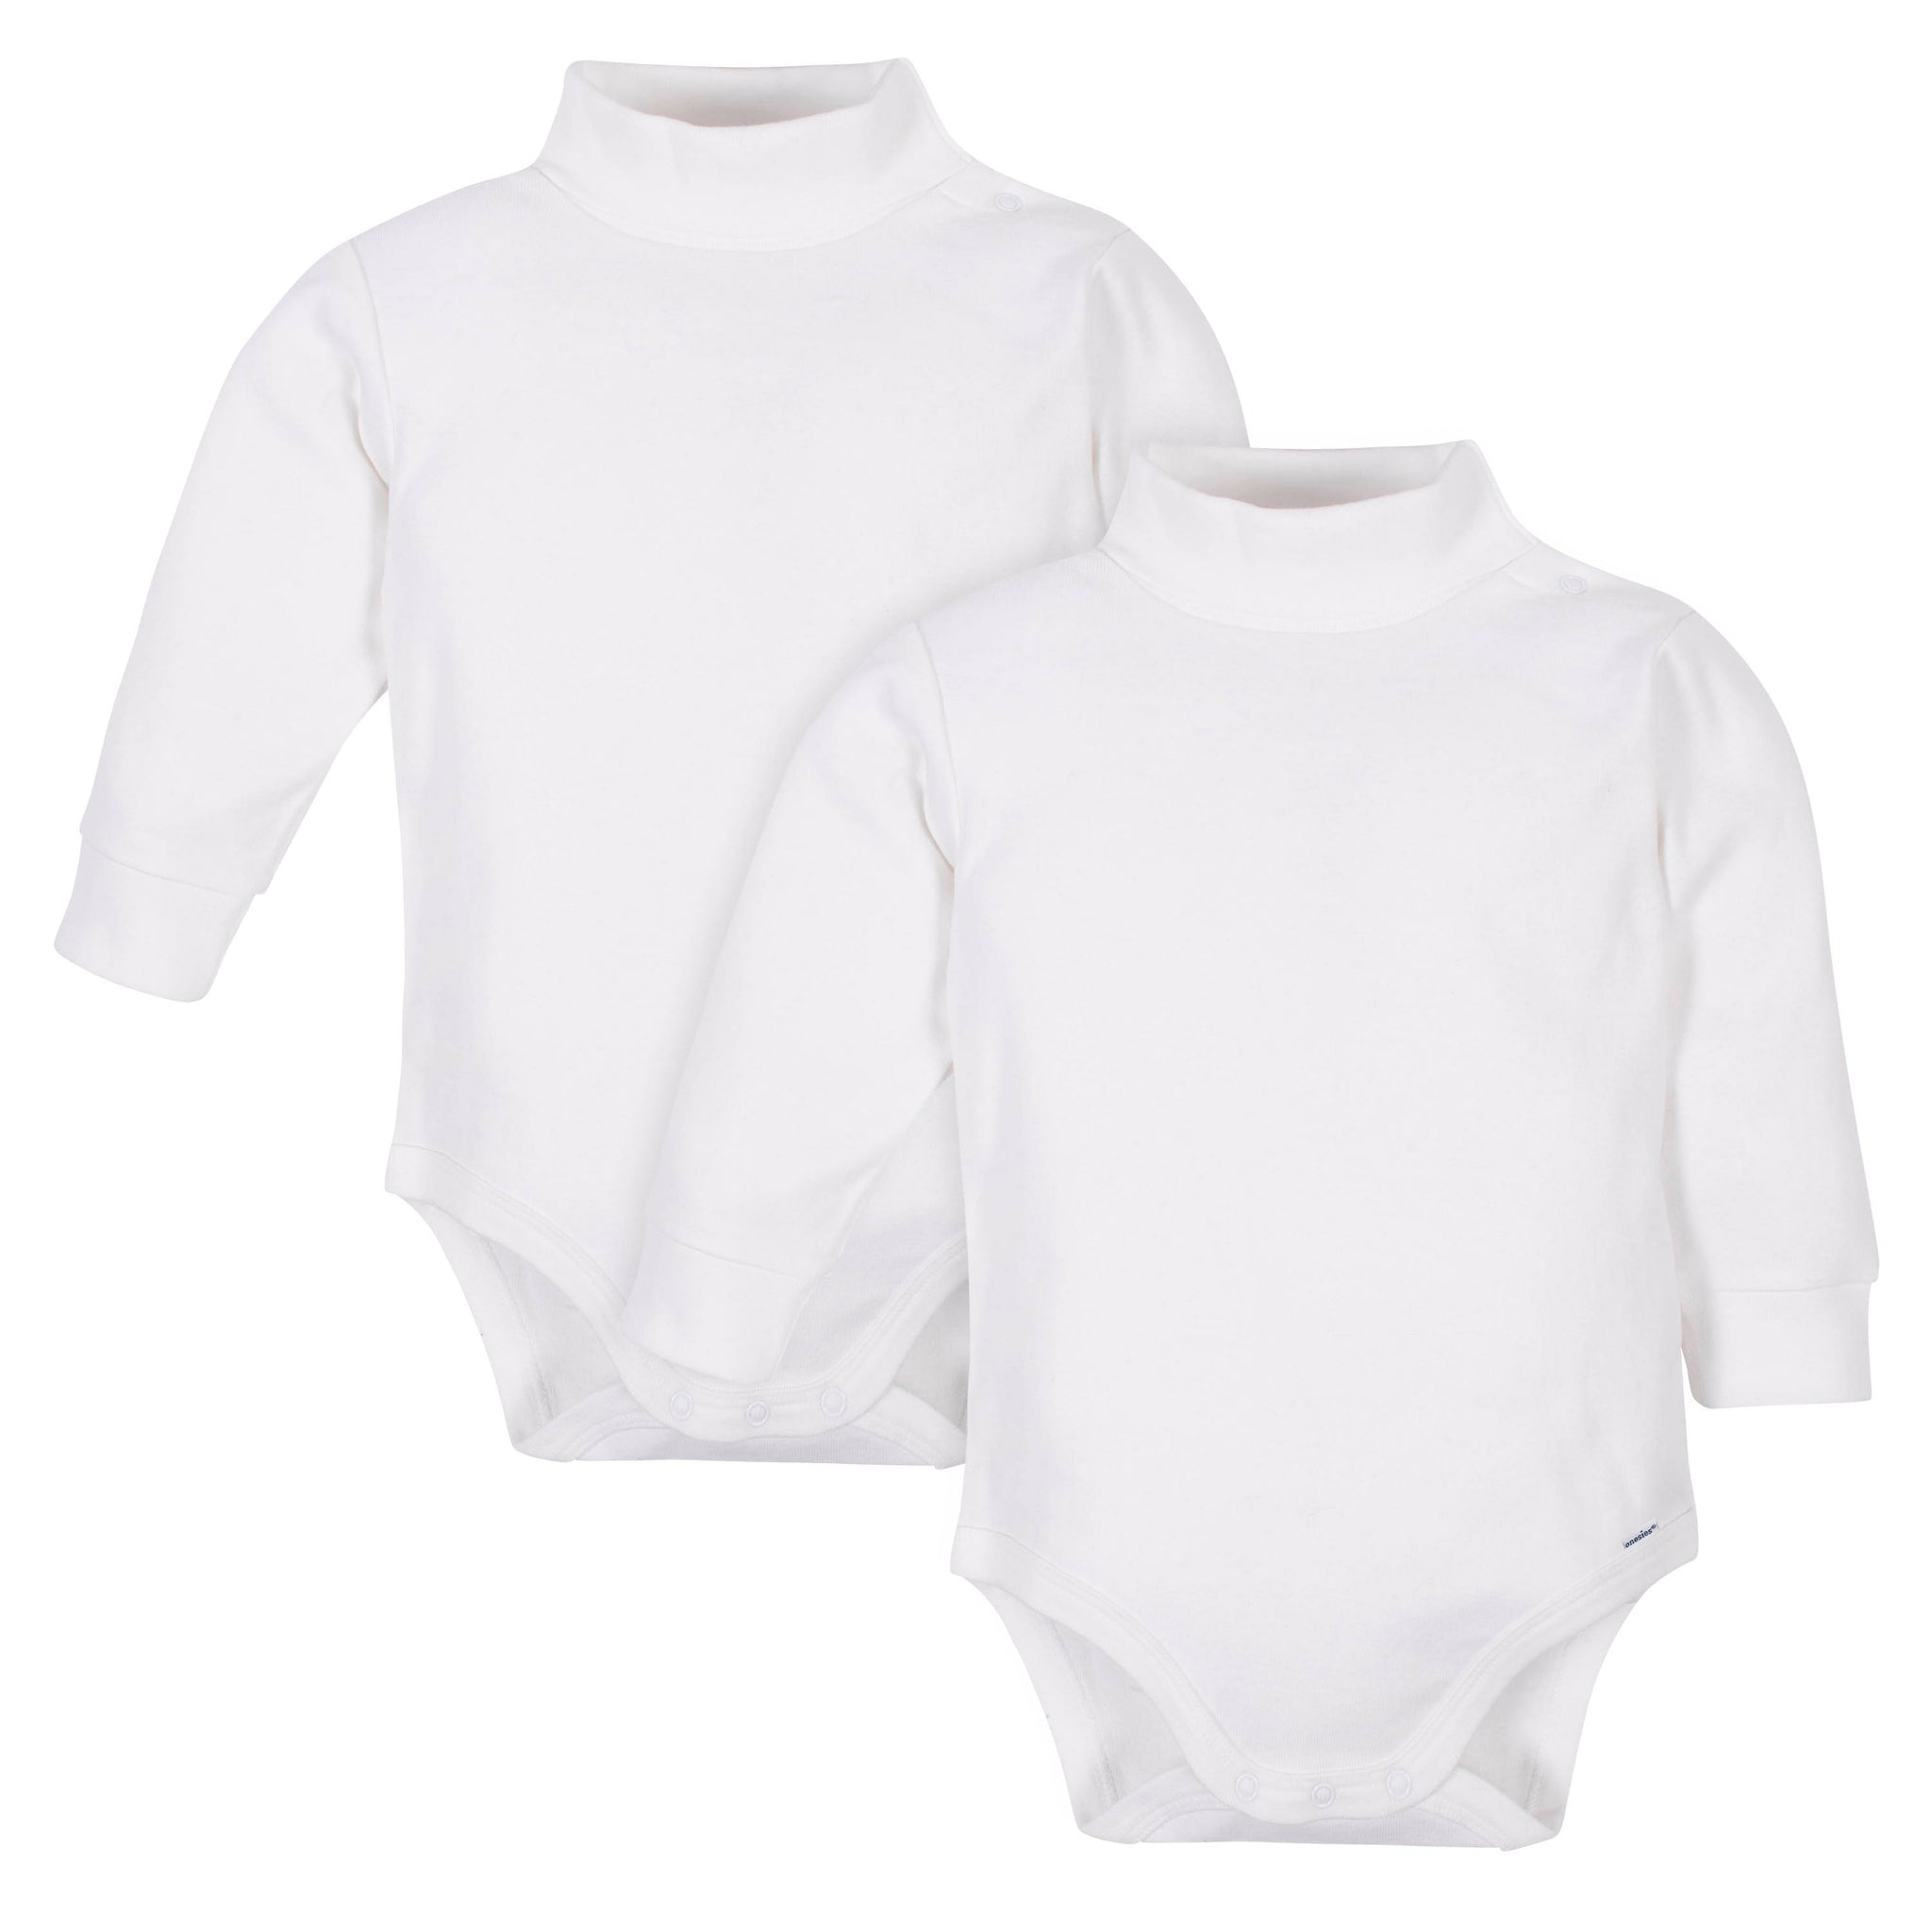 2-Pack Neutral White Long Sleeve Turtlenecks-Gerber Childrenswear Wholesale